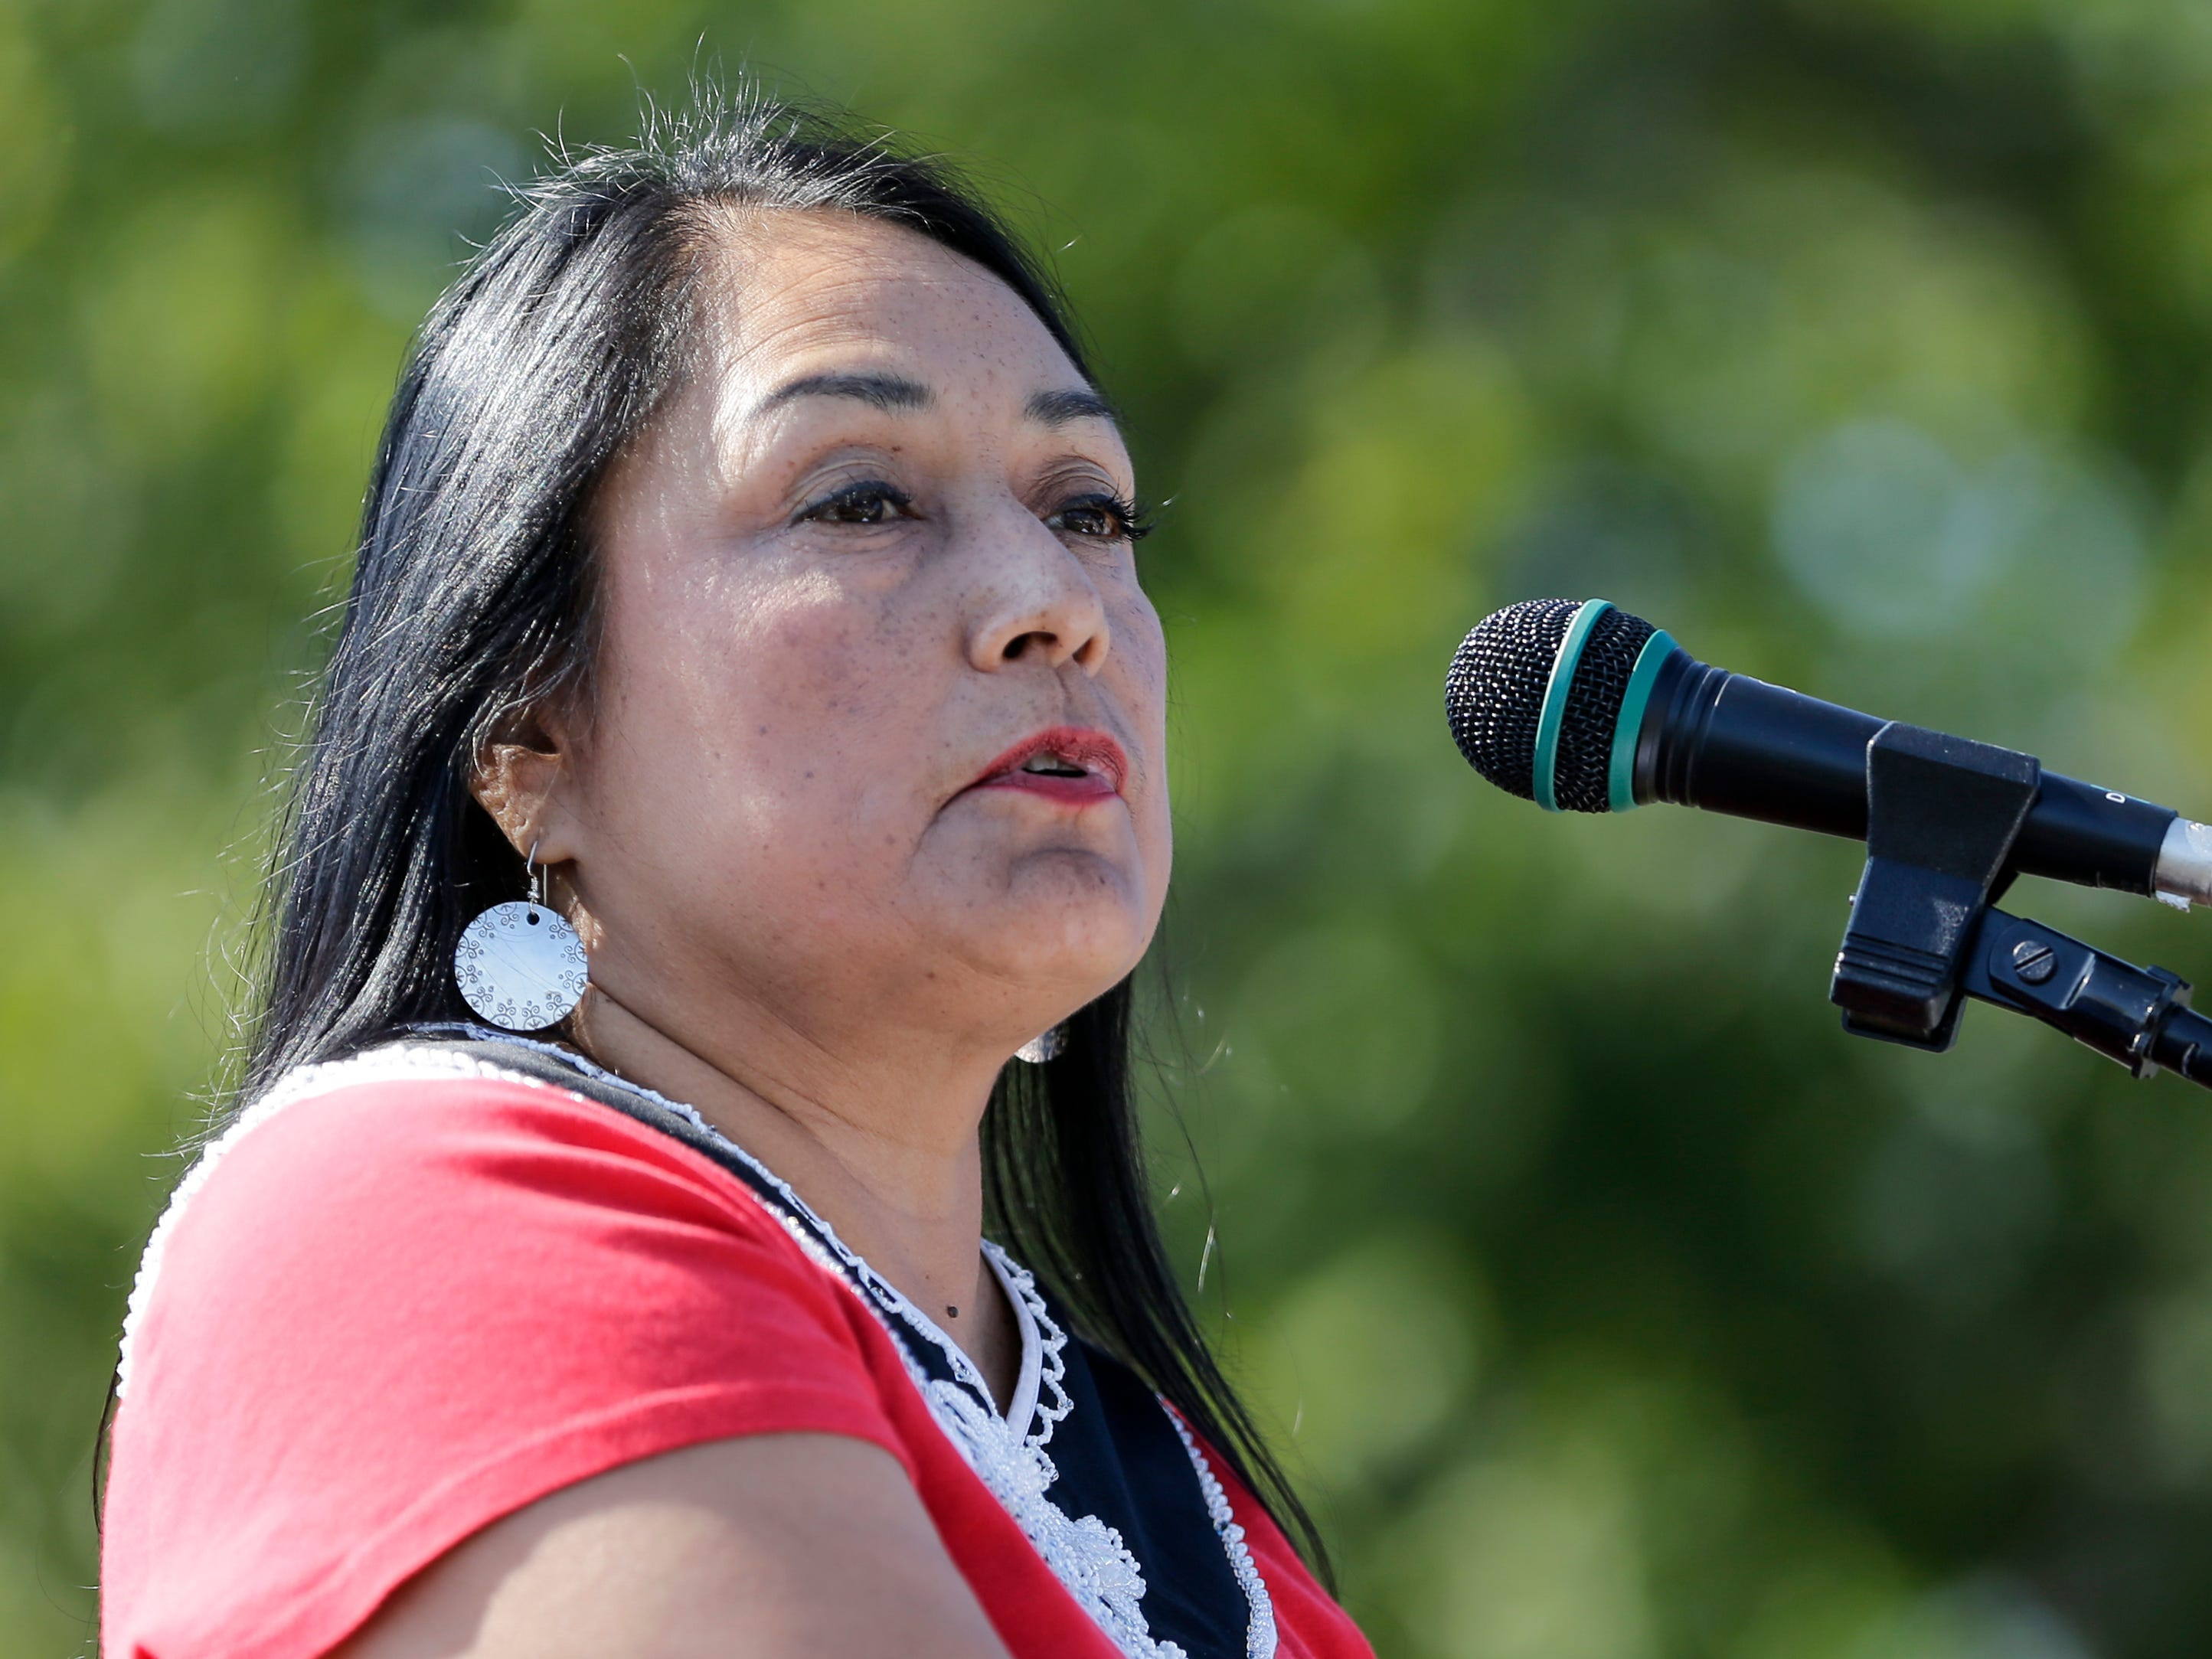 Christina Danforth, president of the Native American Finance Officers Association, speaks during the Spirit of the Rivers monument dedication Sunday, Sept. 16, 2018, in Two Rivers, Wis.